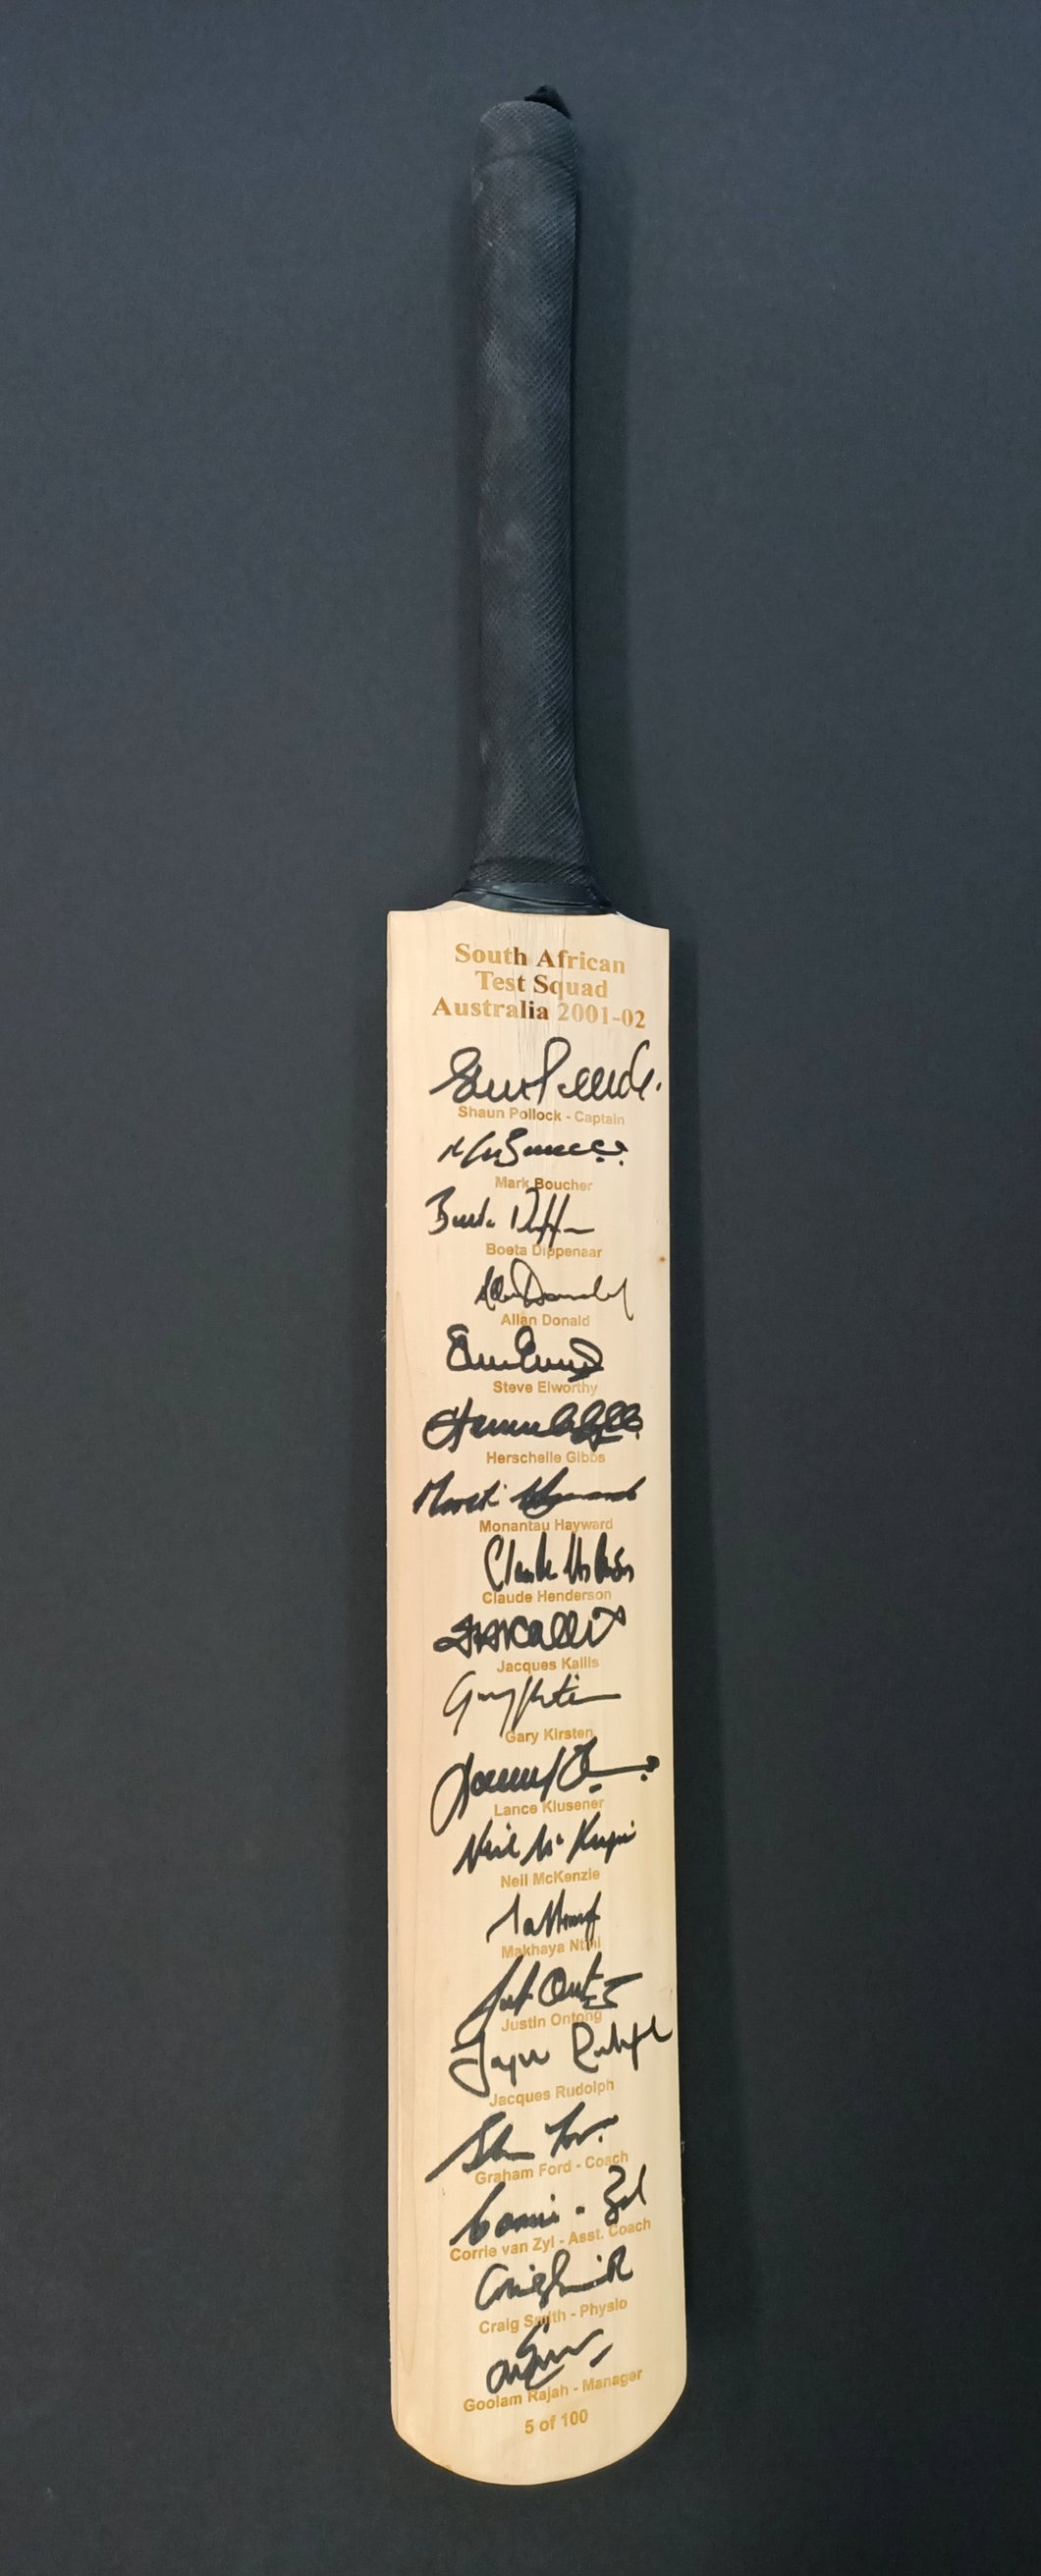 South African Test Squad Australia 2001-02 signed bat - Heroes Framing & Memorabilia